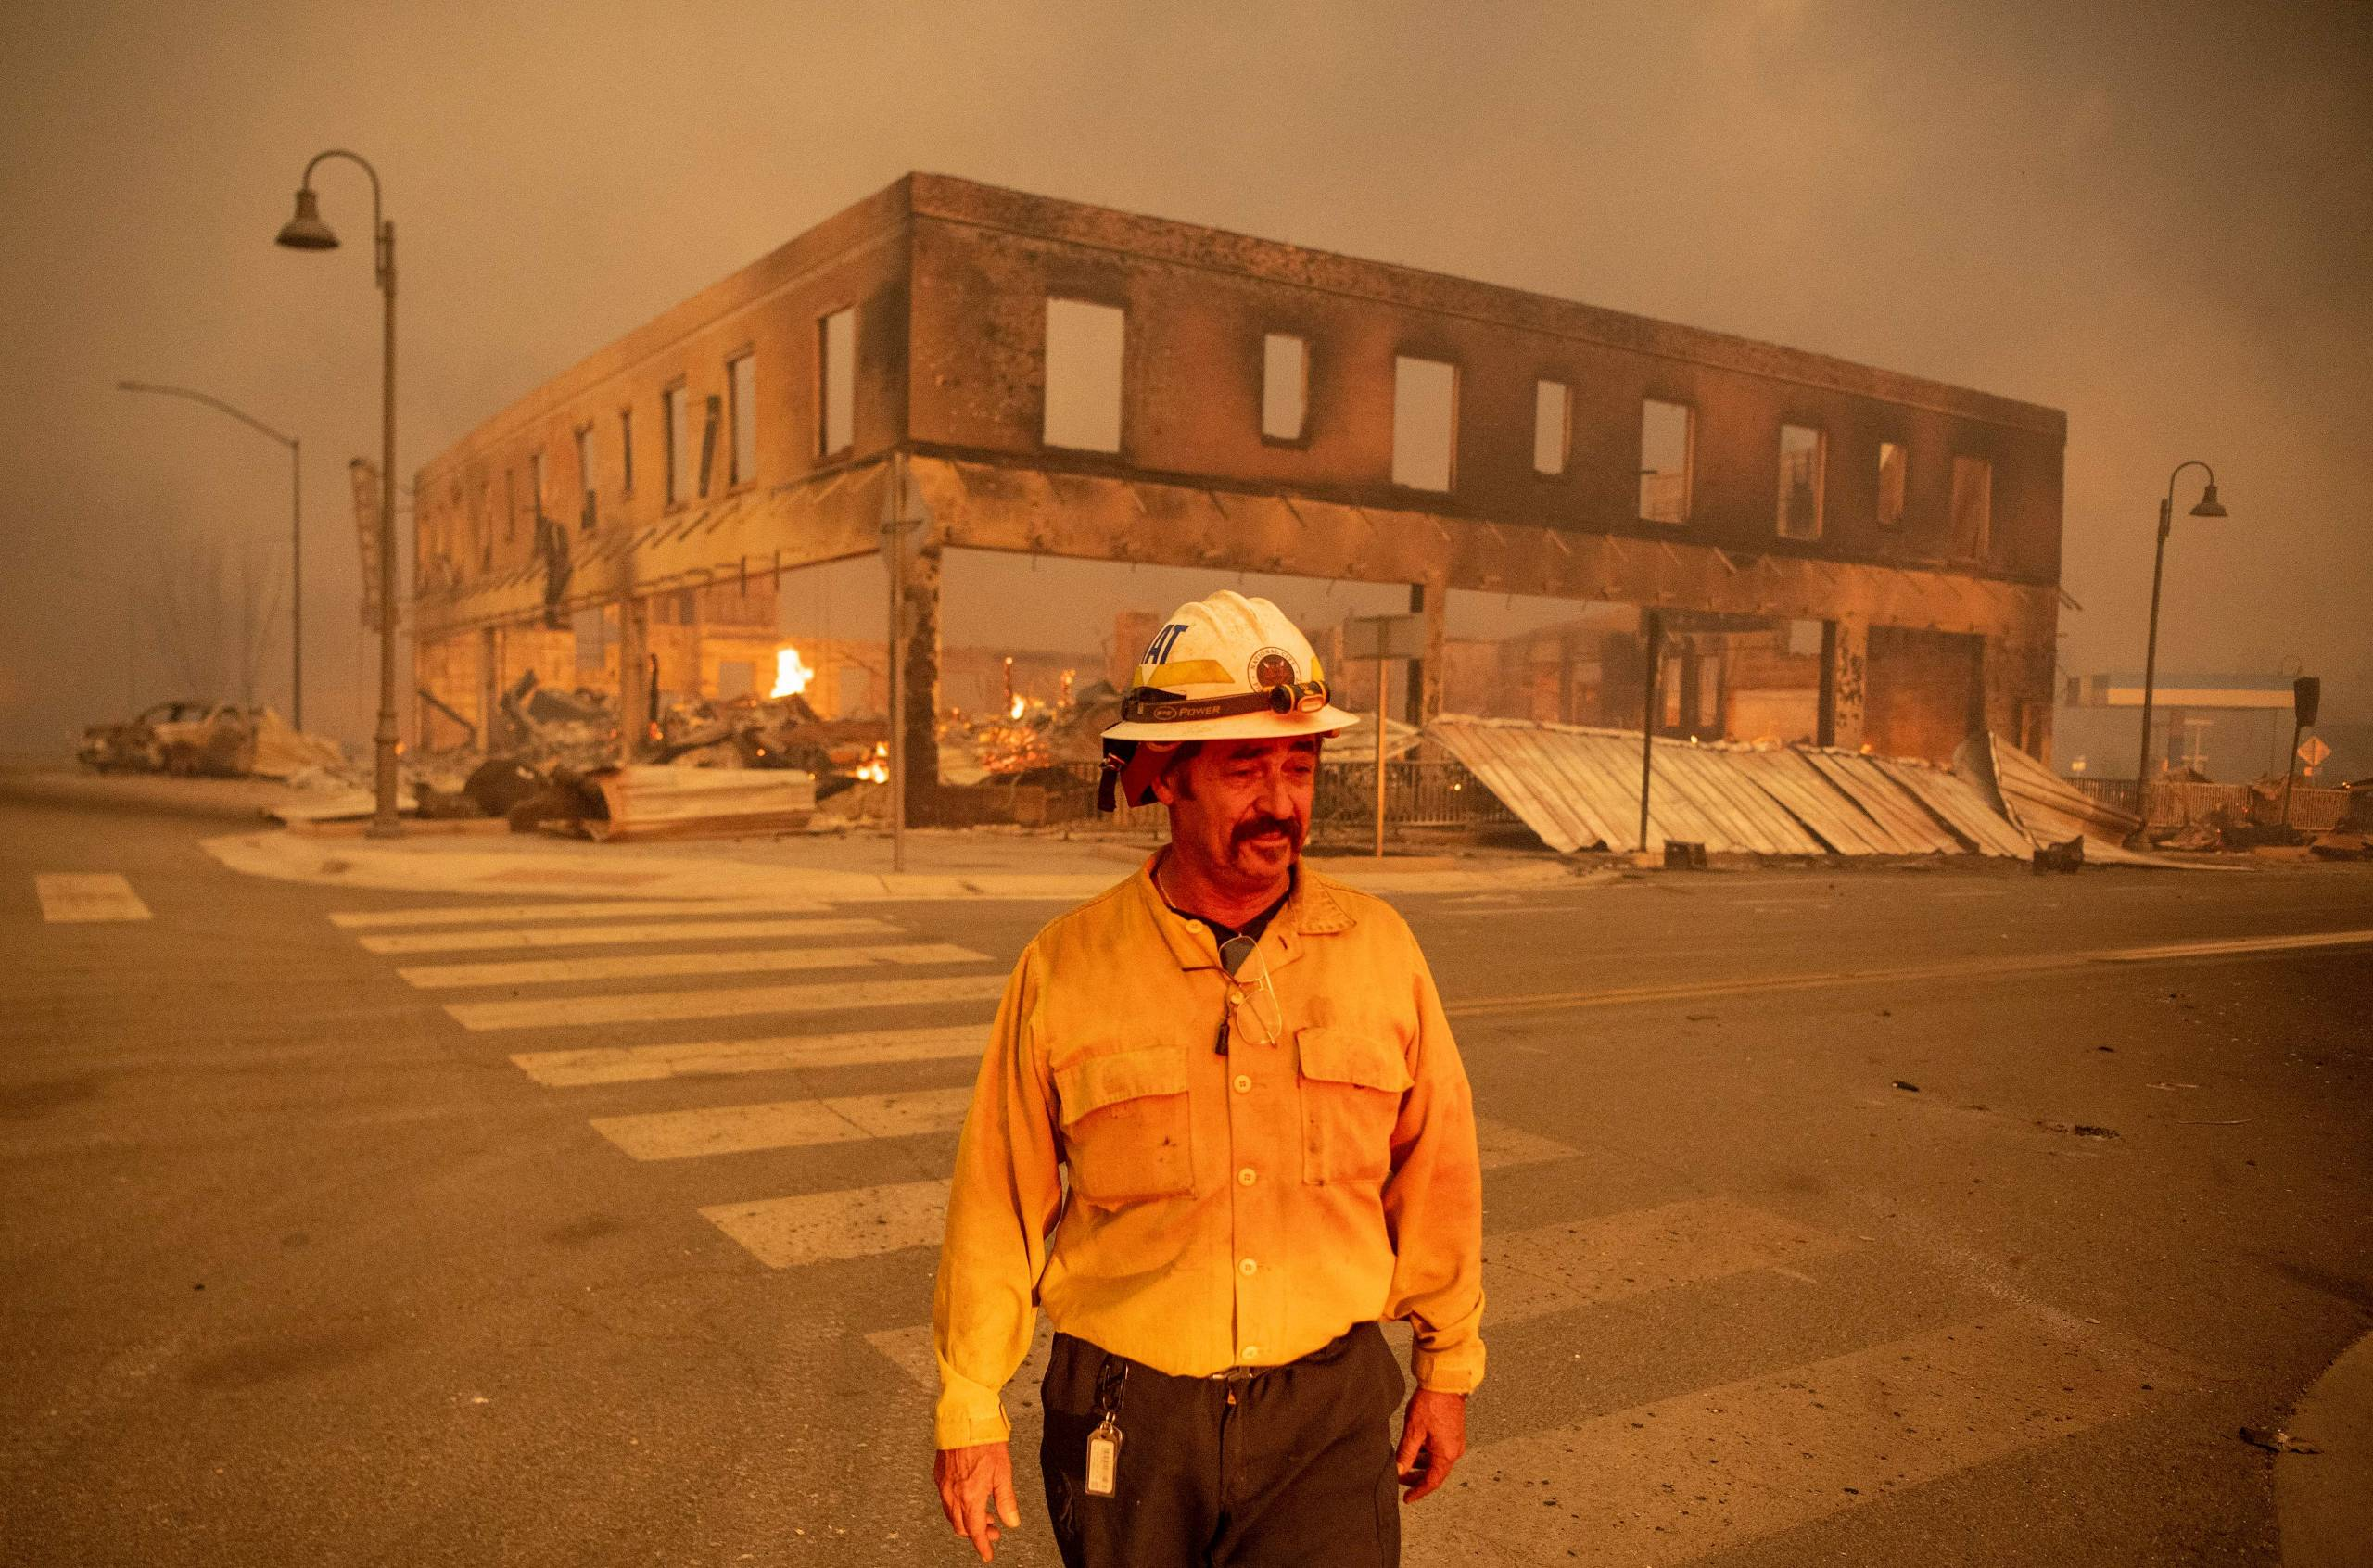 Battalion Commander Sergio Mora watches the Dixie fire burn in downtown Greenville, Calif. On August 4, 2021. On the same day, officials in northern California alerted residents of two communities on the way. from the fire immediately evacuate the strong winds.  whipped the flames forward.  The fire burned down dozens of homes and businesses in Greenville.